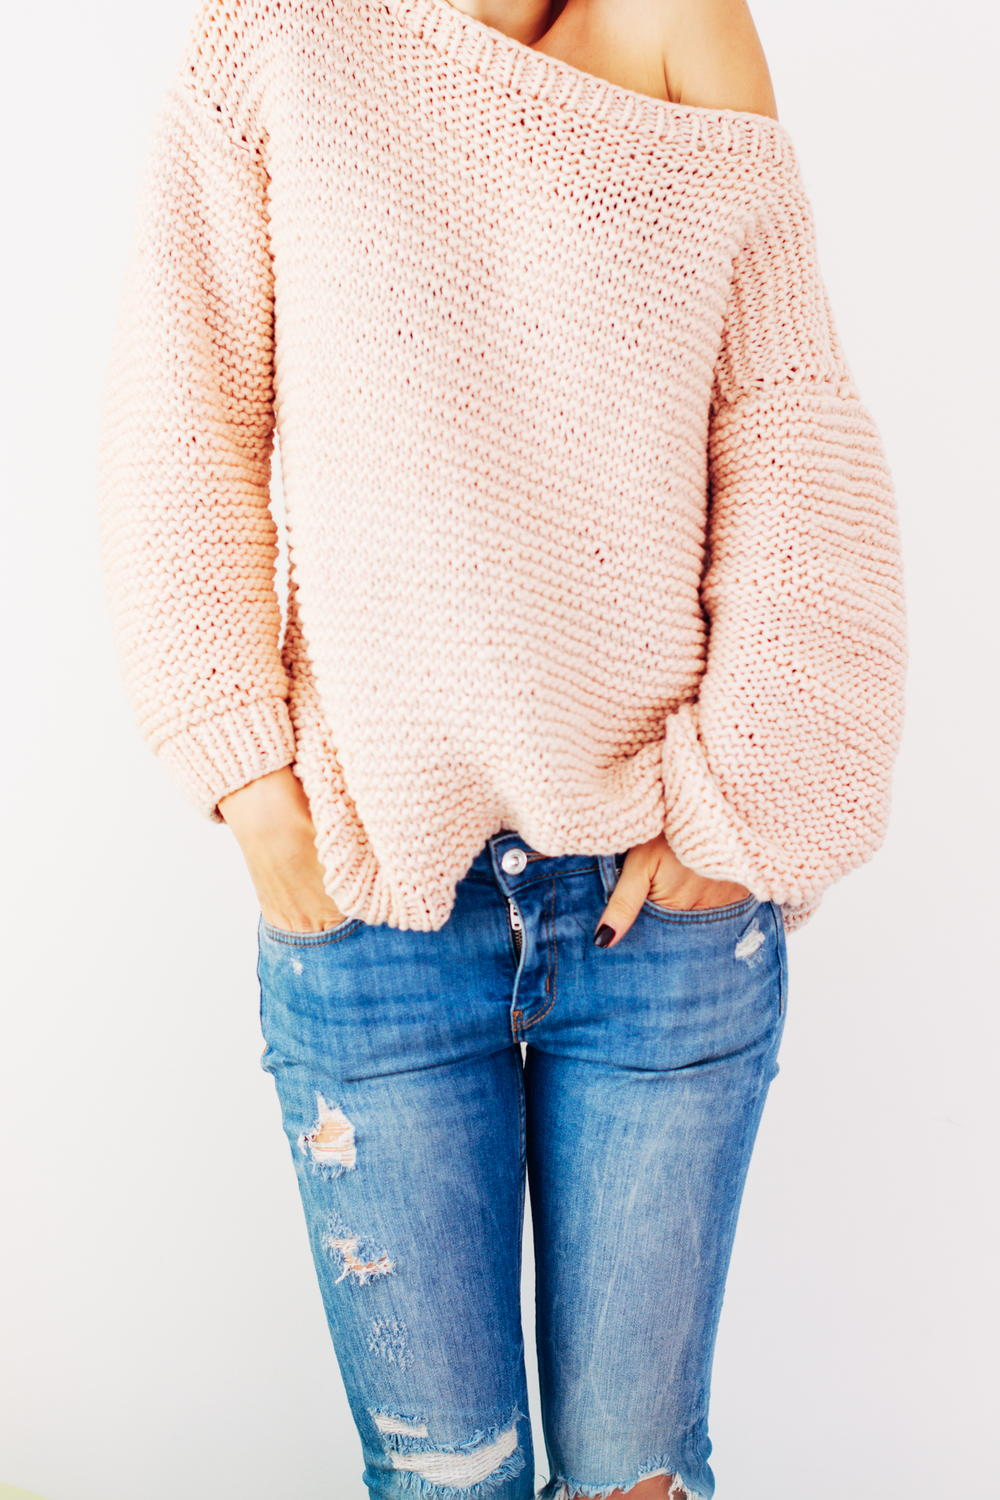 Peachy Keen Oversize Knitted Sweater | AllFreeKnitting.com